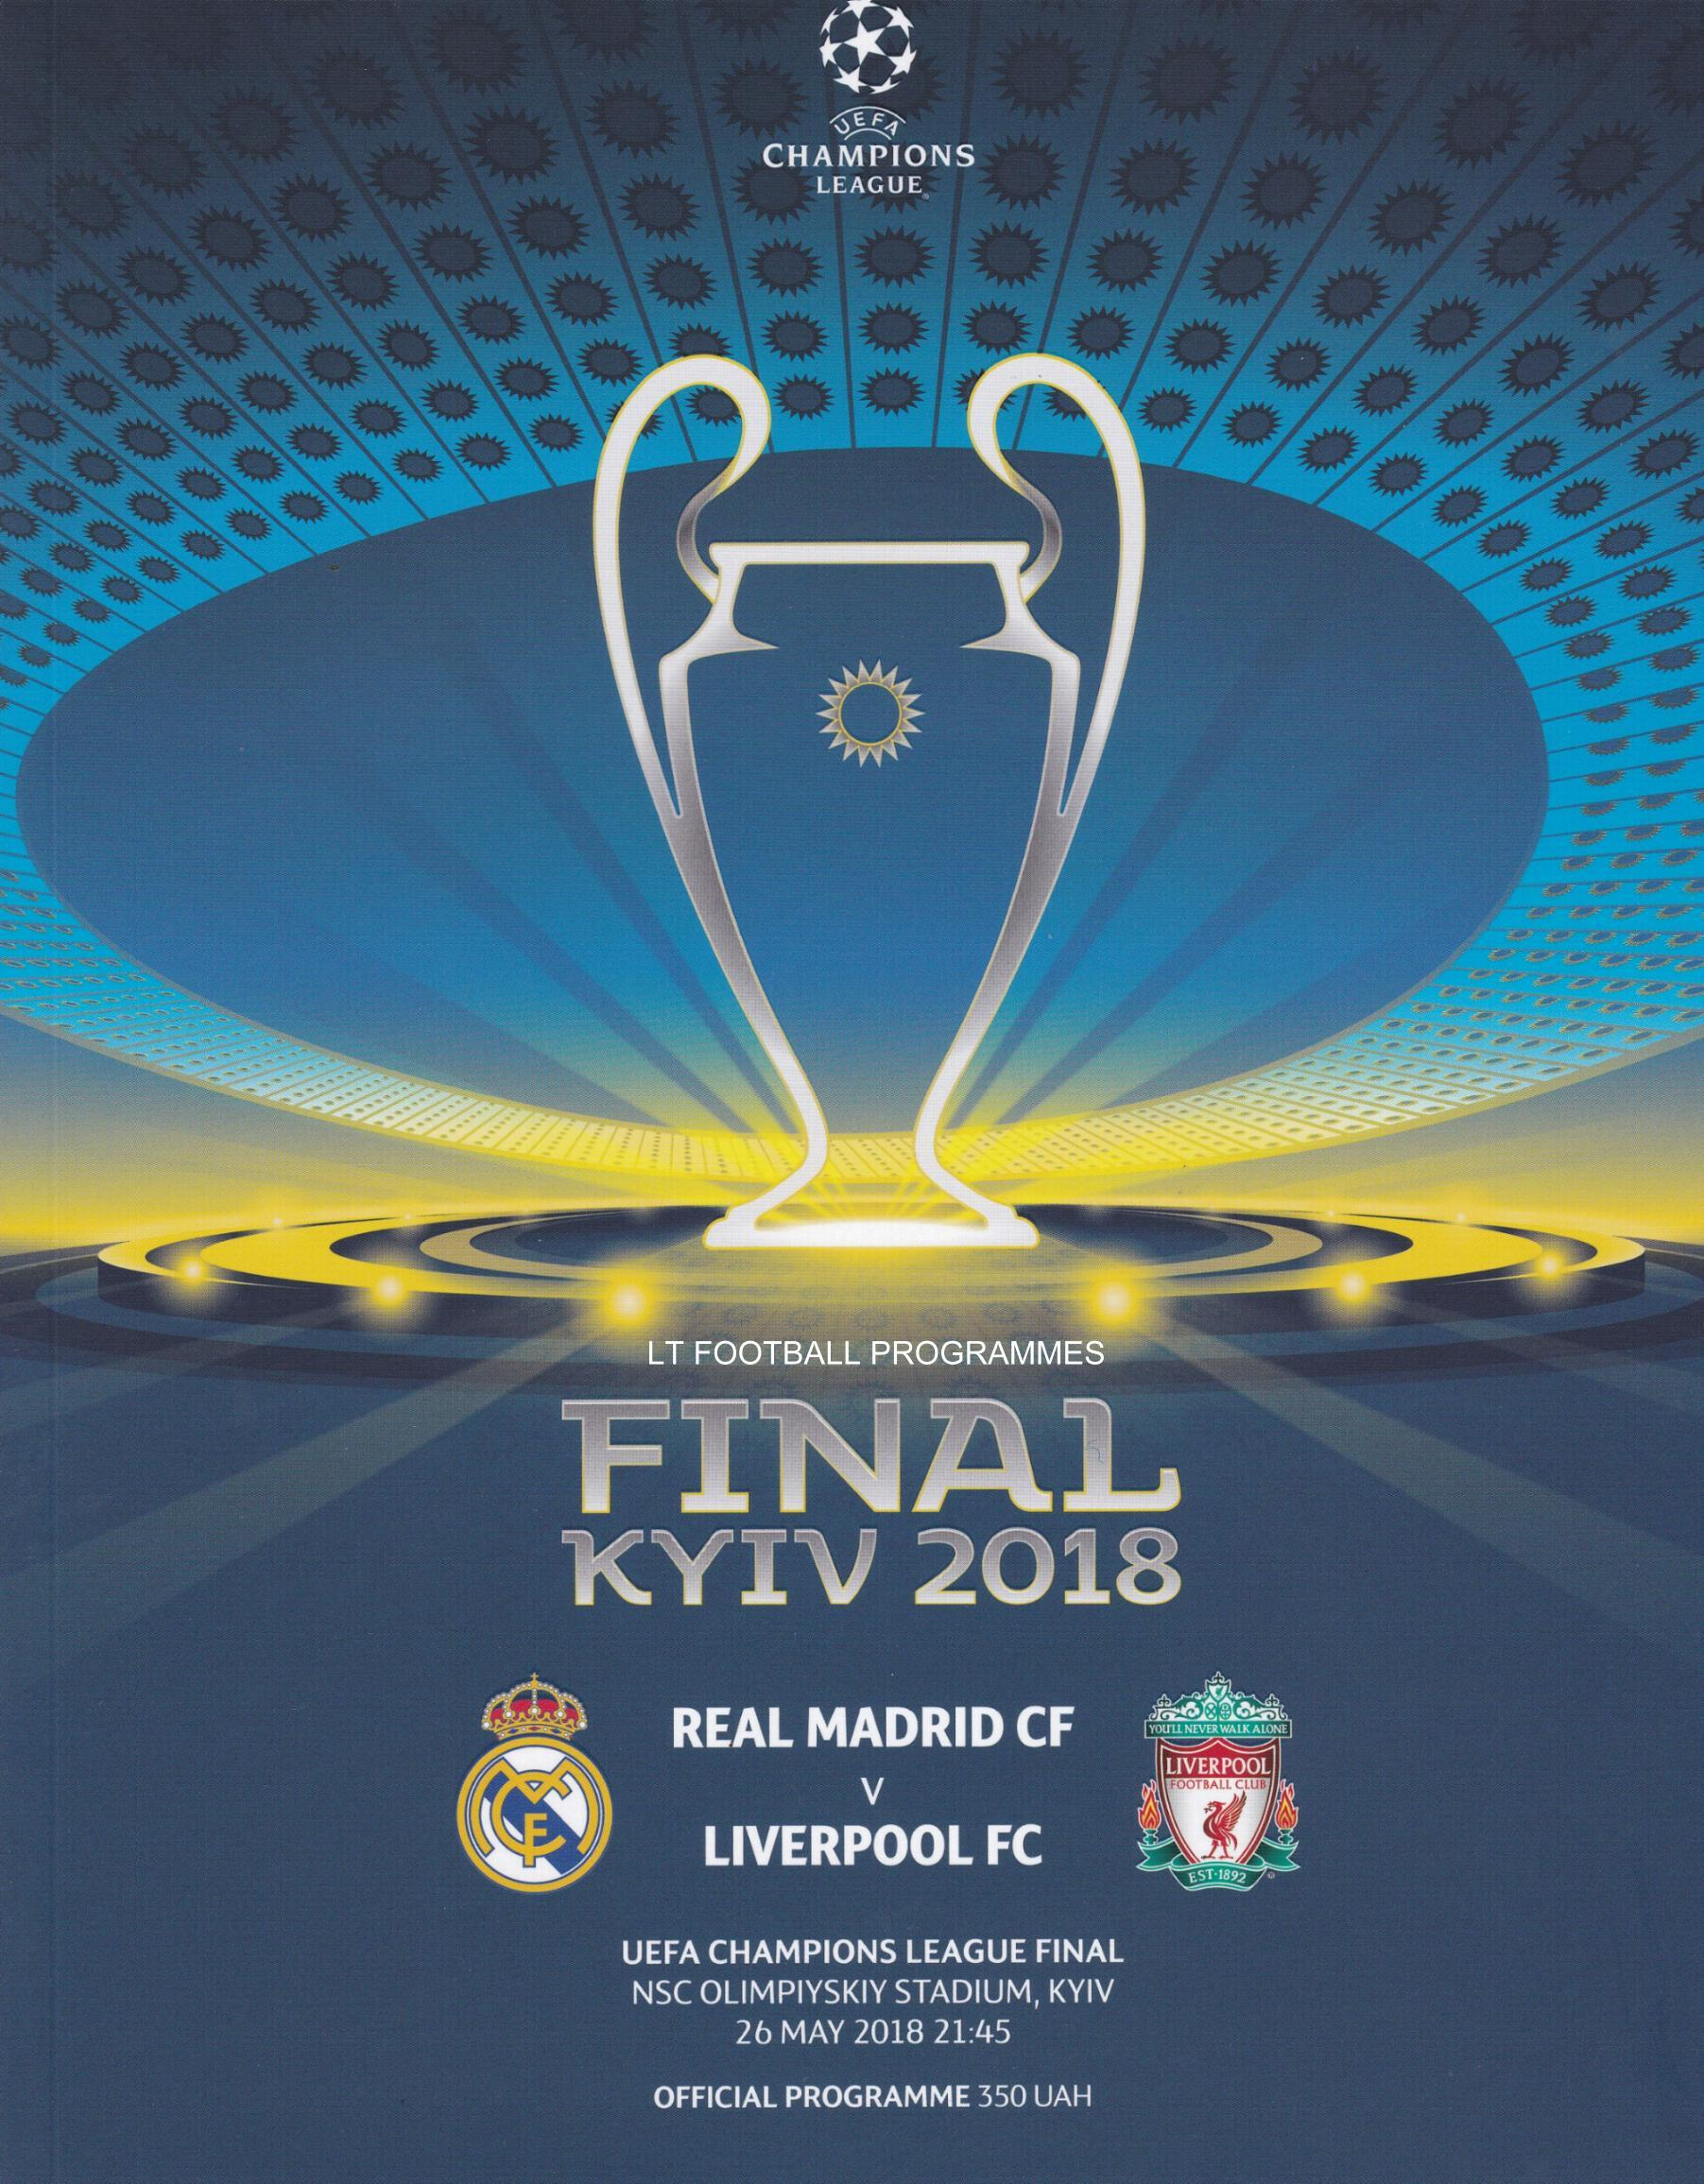 2018 CHAMPIONS LEAGUE FINAL - LIVERPOOL v REAL MADRID POST FREE